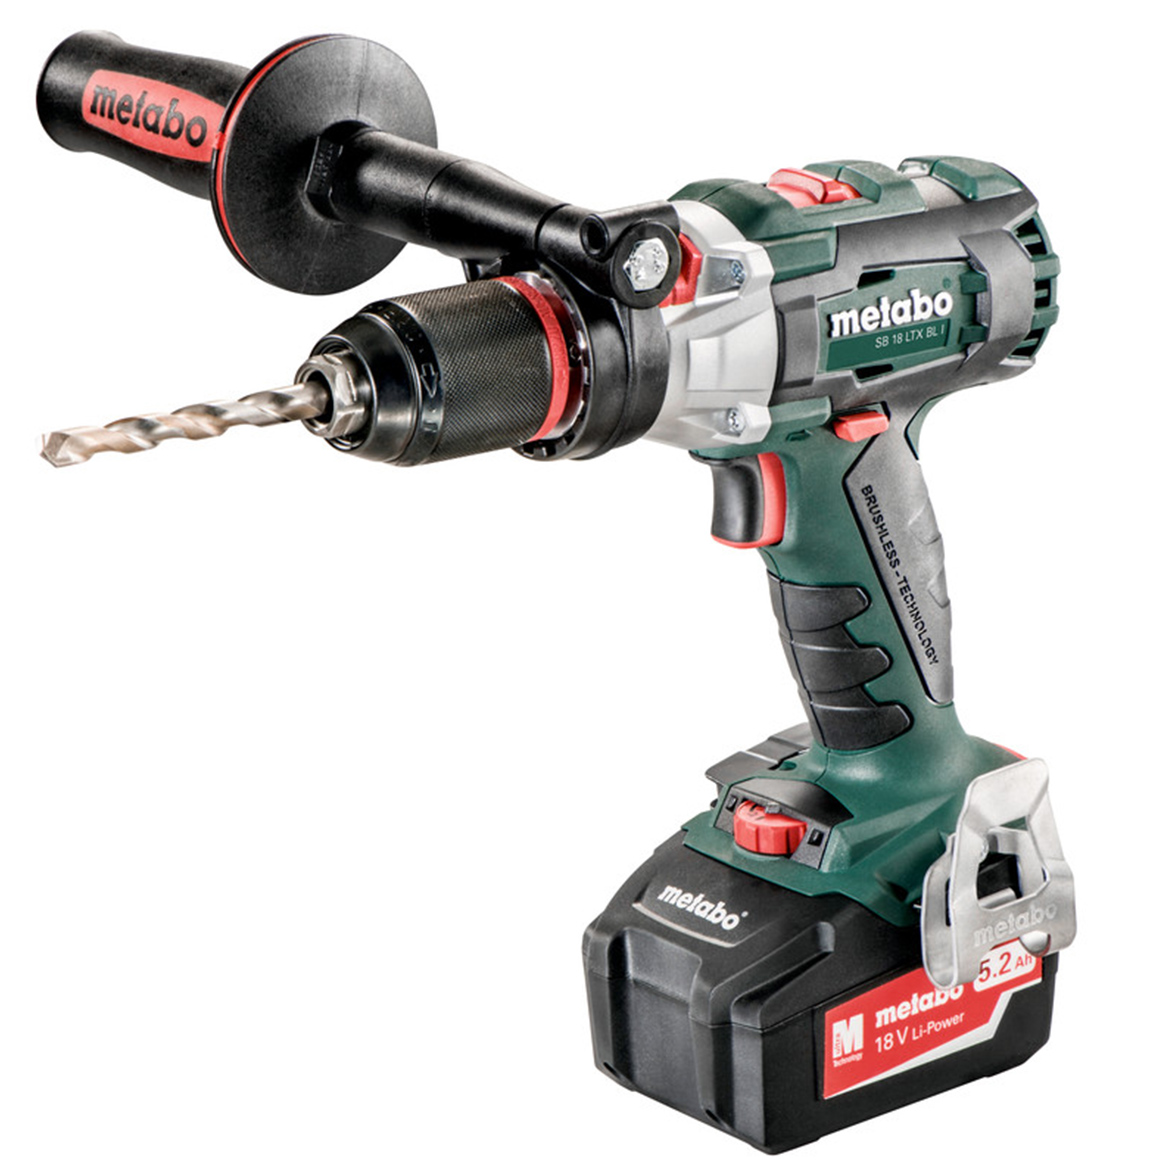 Metabo 602352520 18-Volt 5.2Ah Lithium-Ion Brushless Hammer Drill//Driver Kit